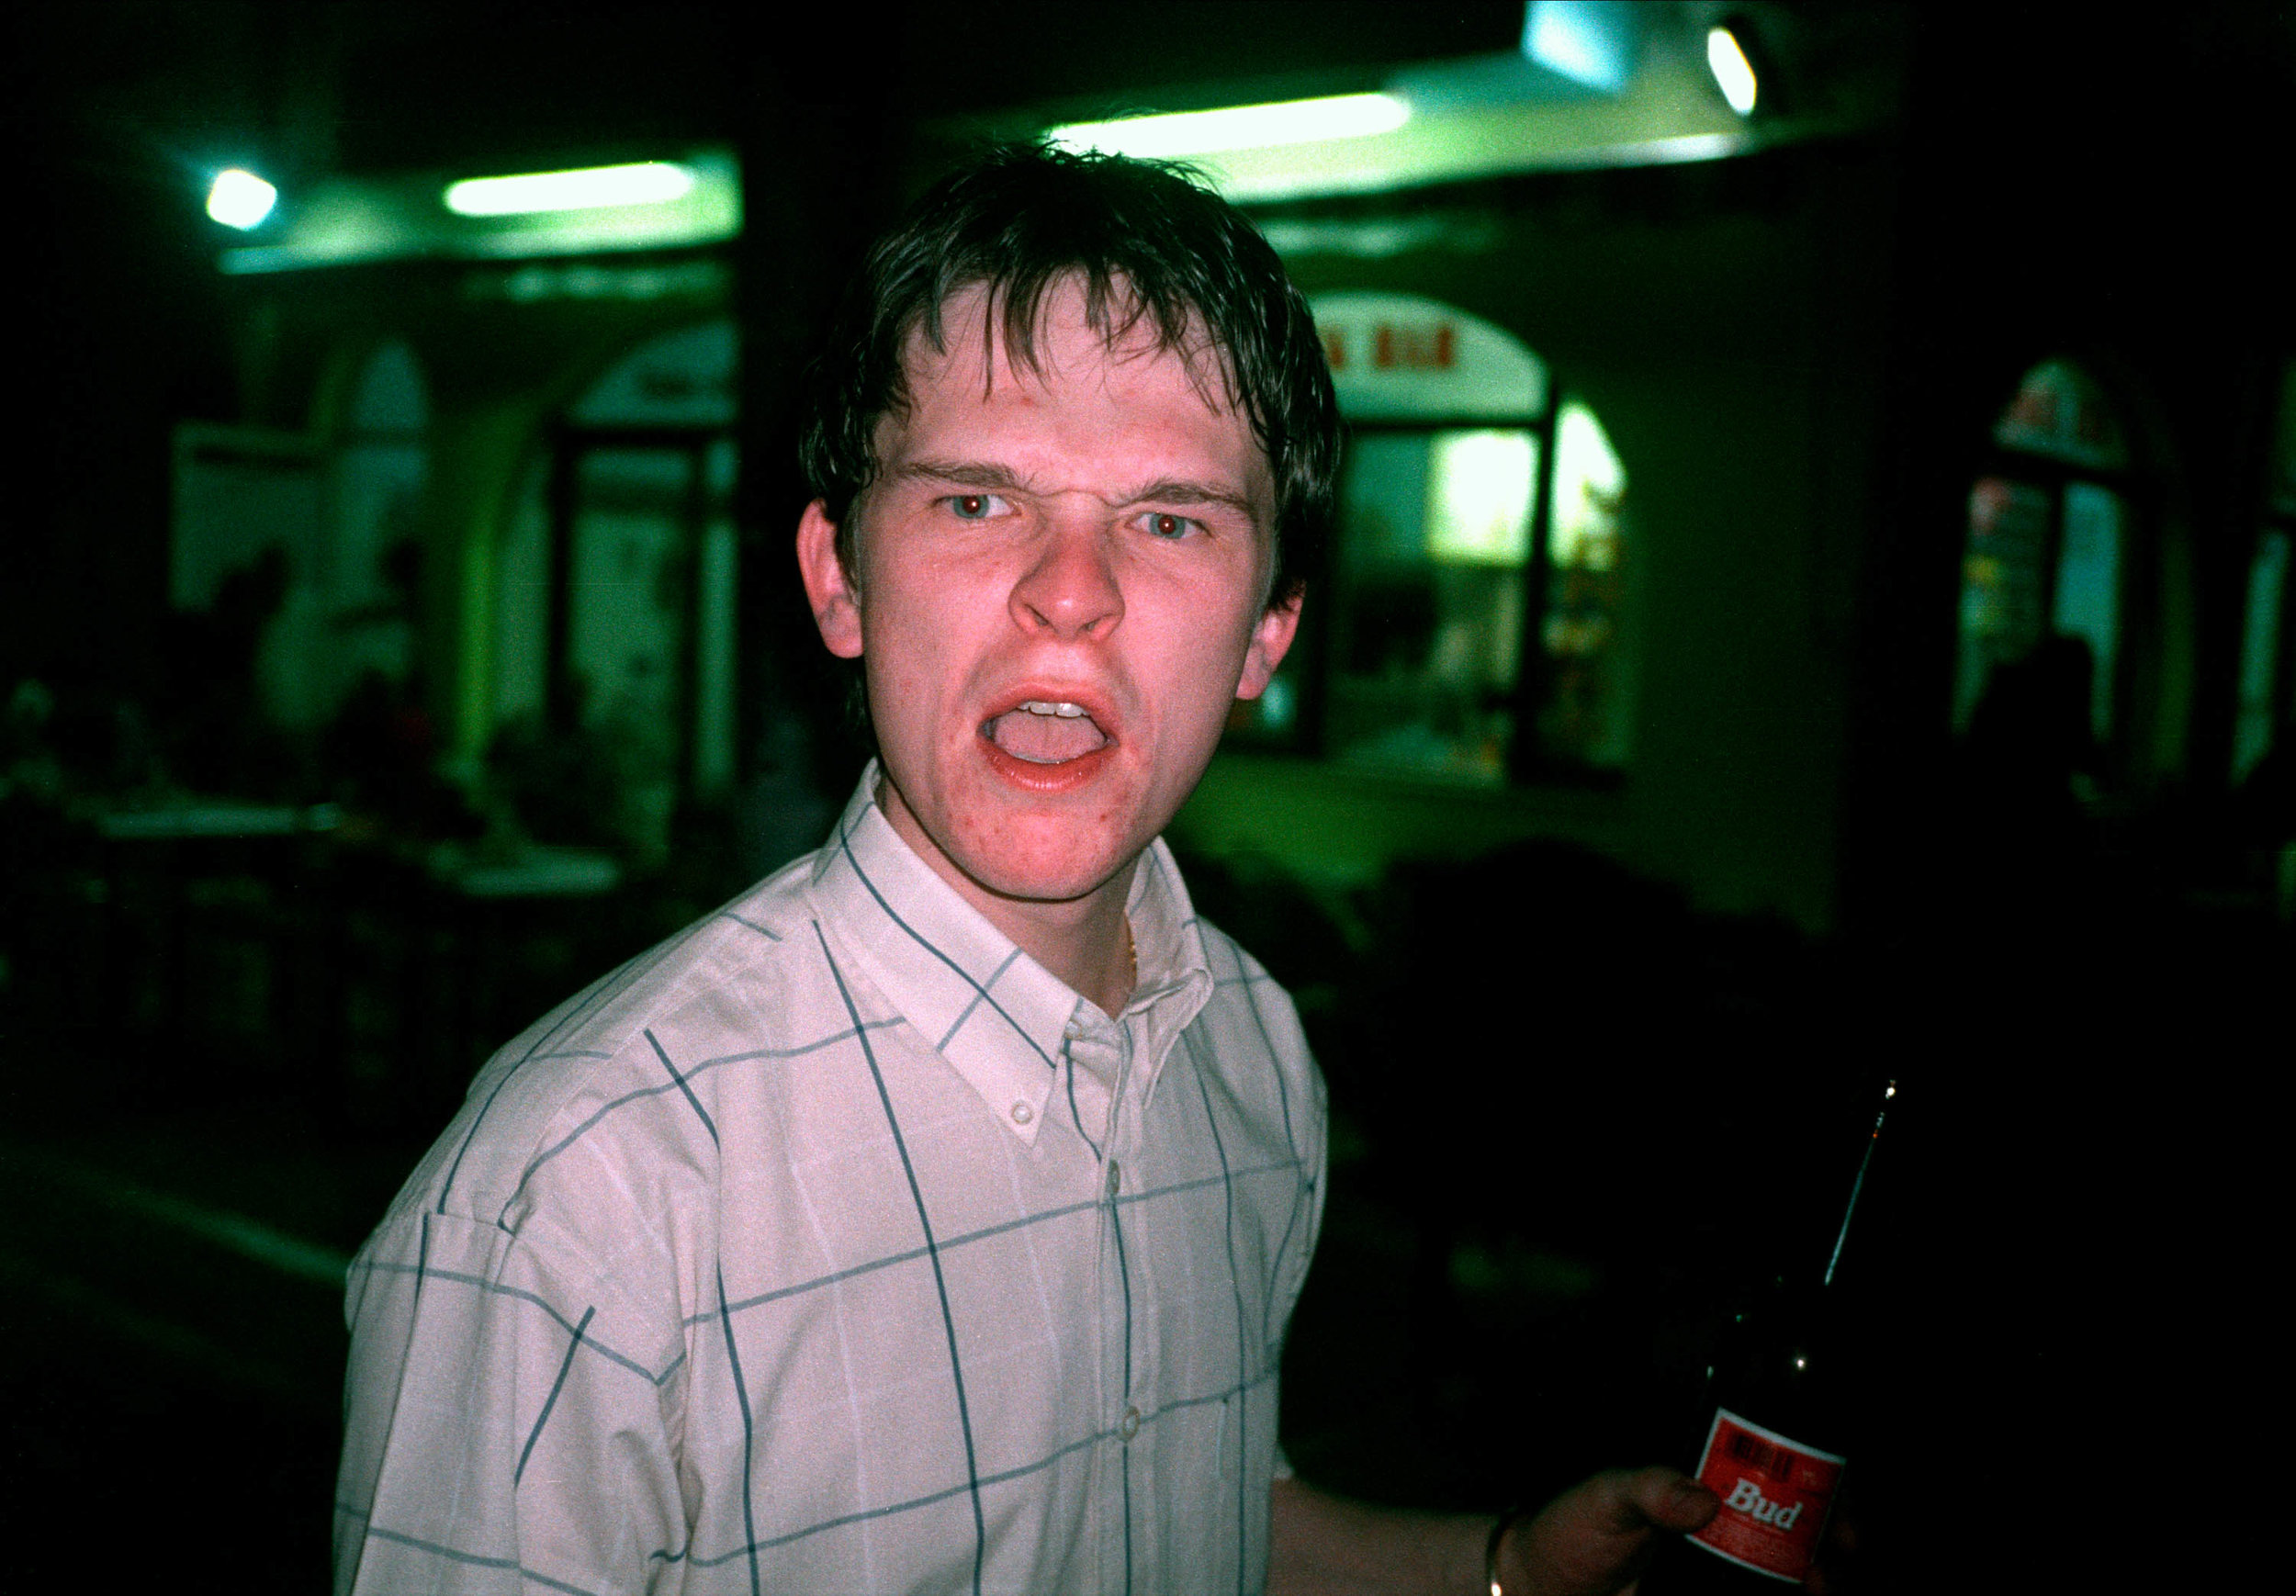 Lads, 1997 – 2004 - Project documenting the hedonistic culture of young working-class men in the late 1990's and early 2000's